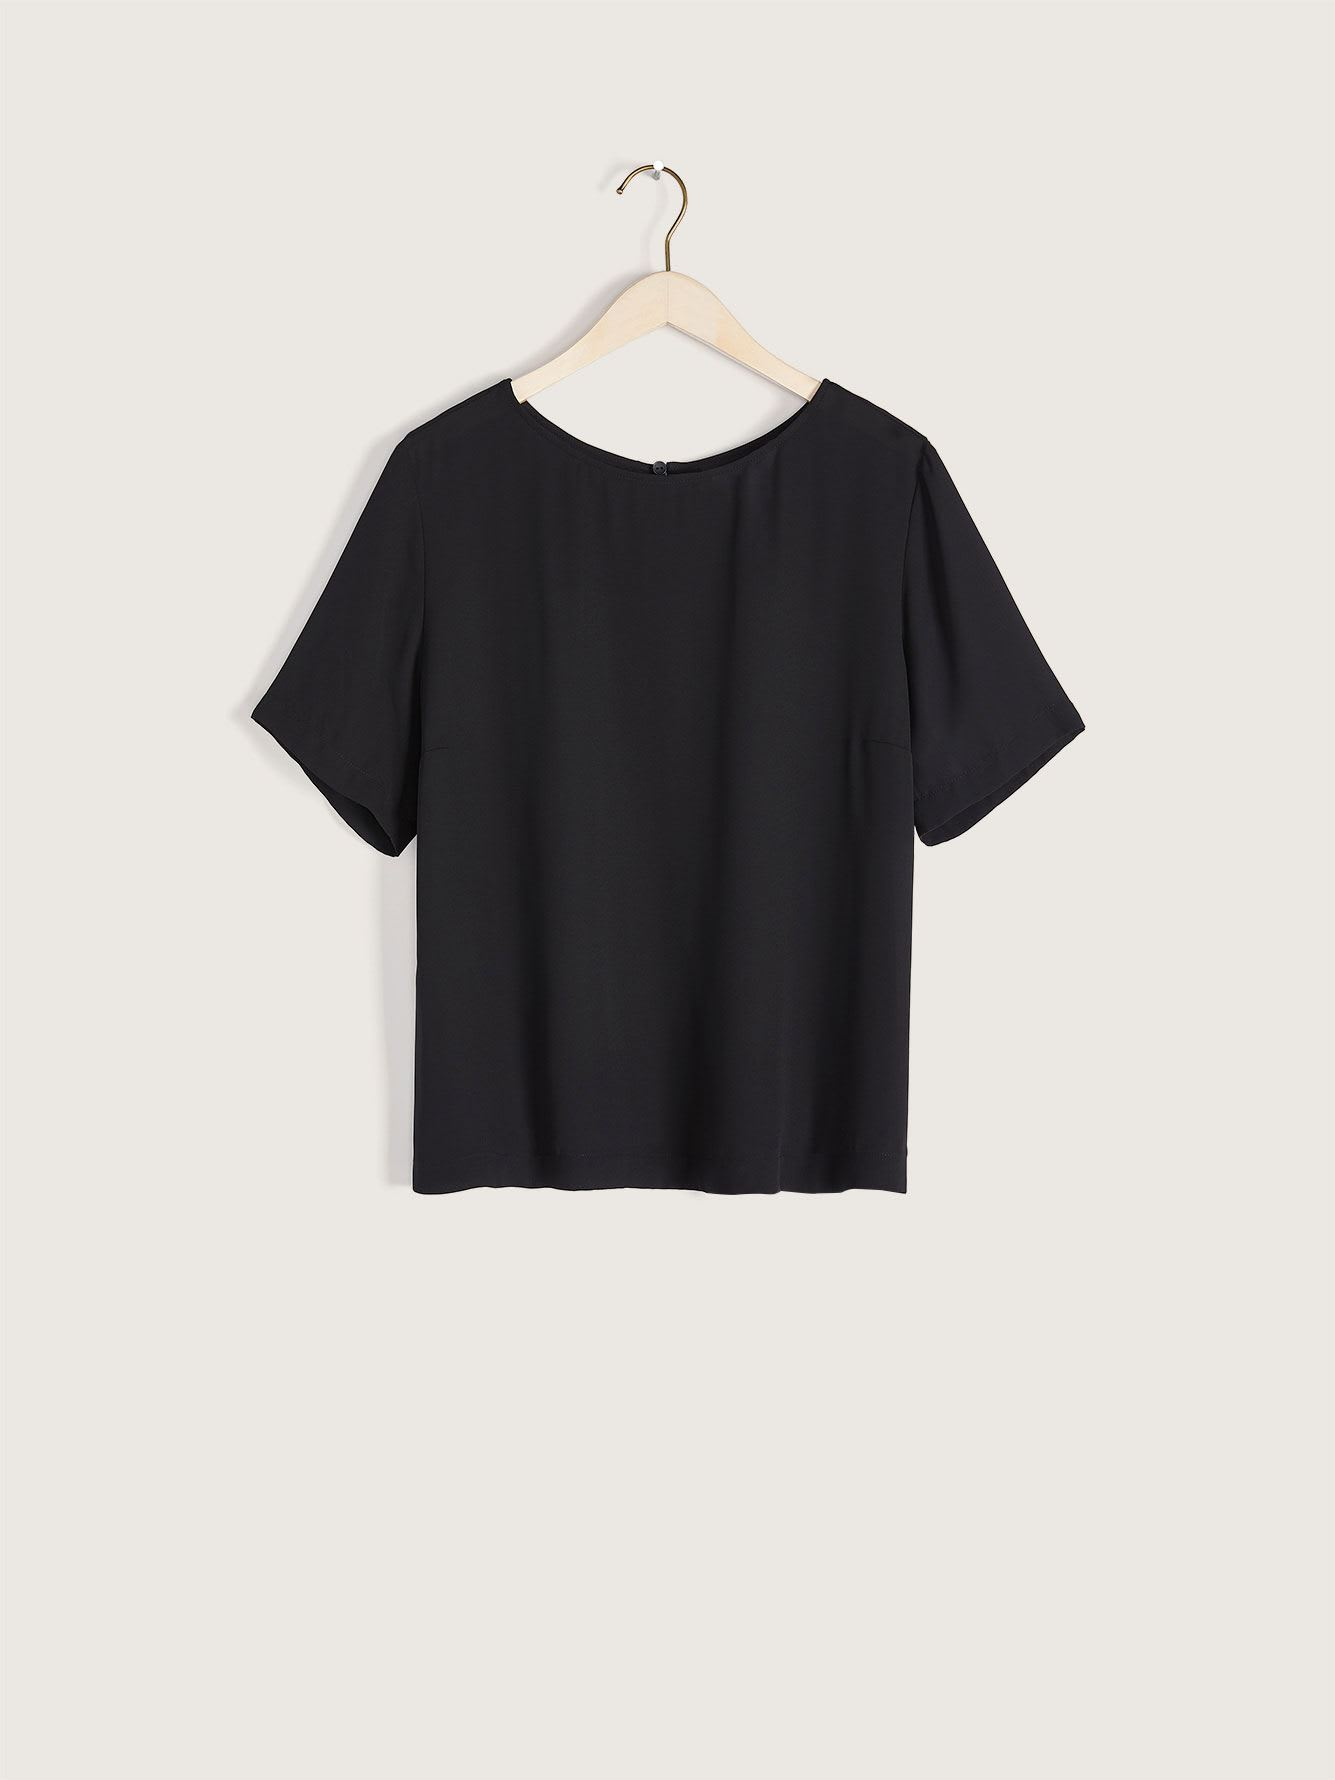 Elbow-Sleeve Black Blouse - Addition Elle